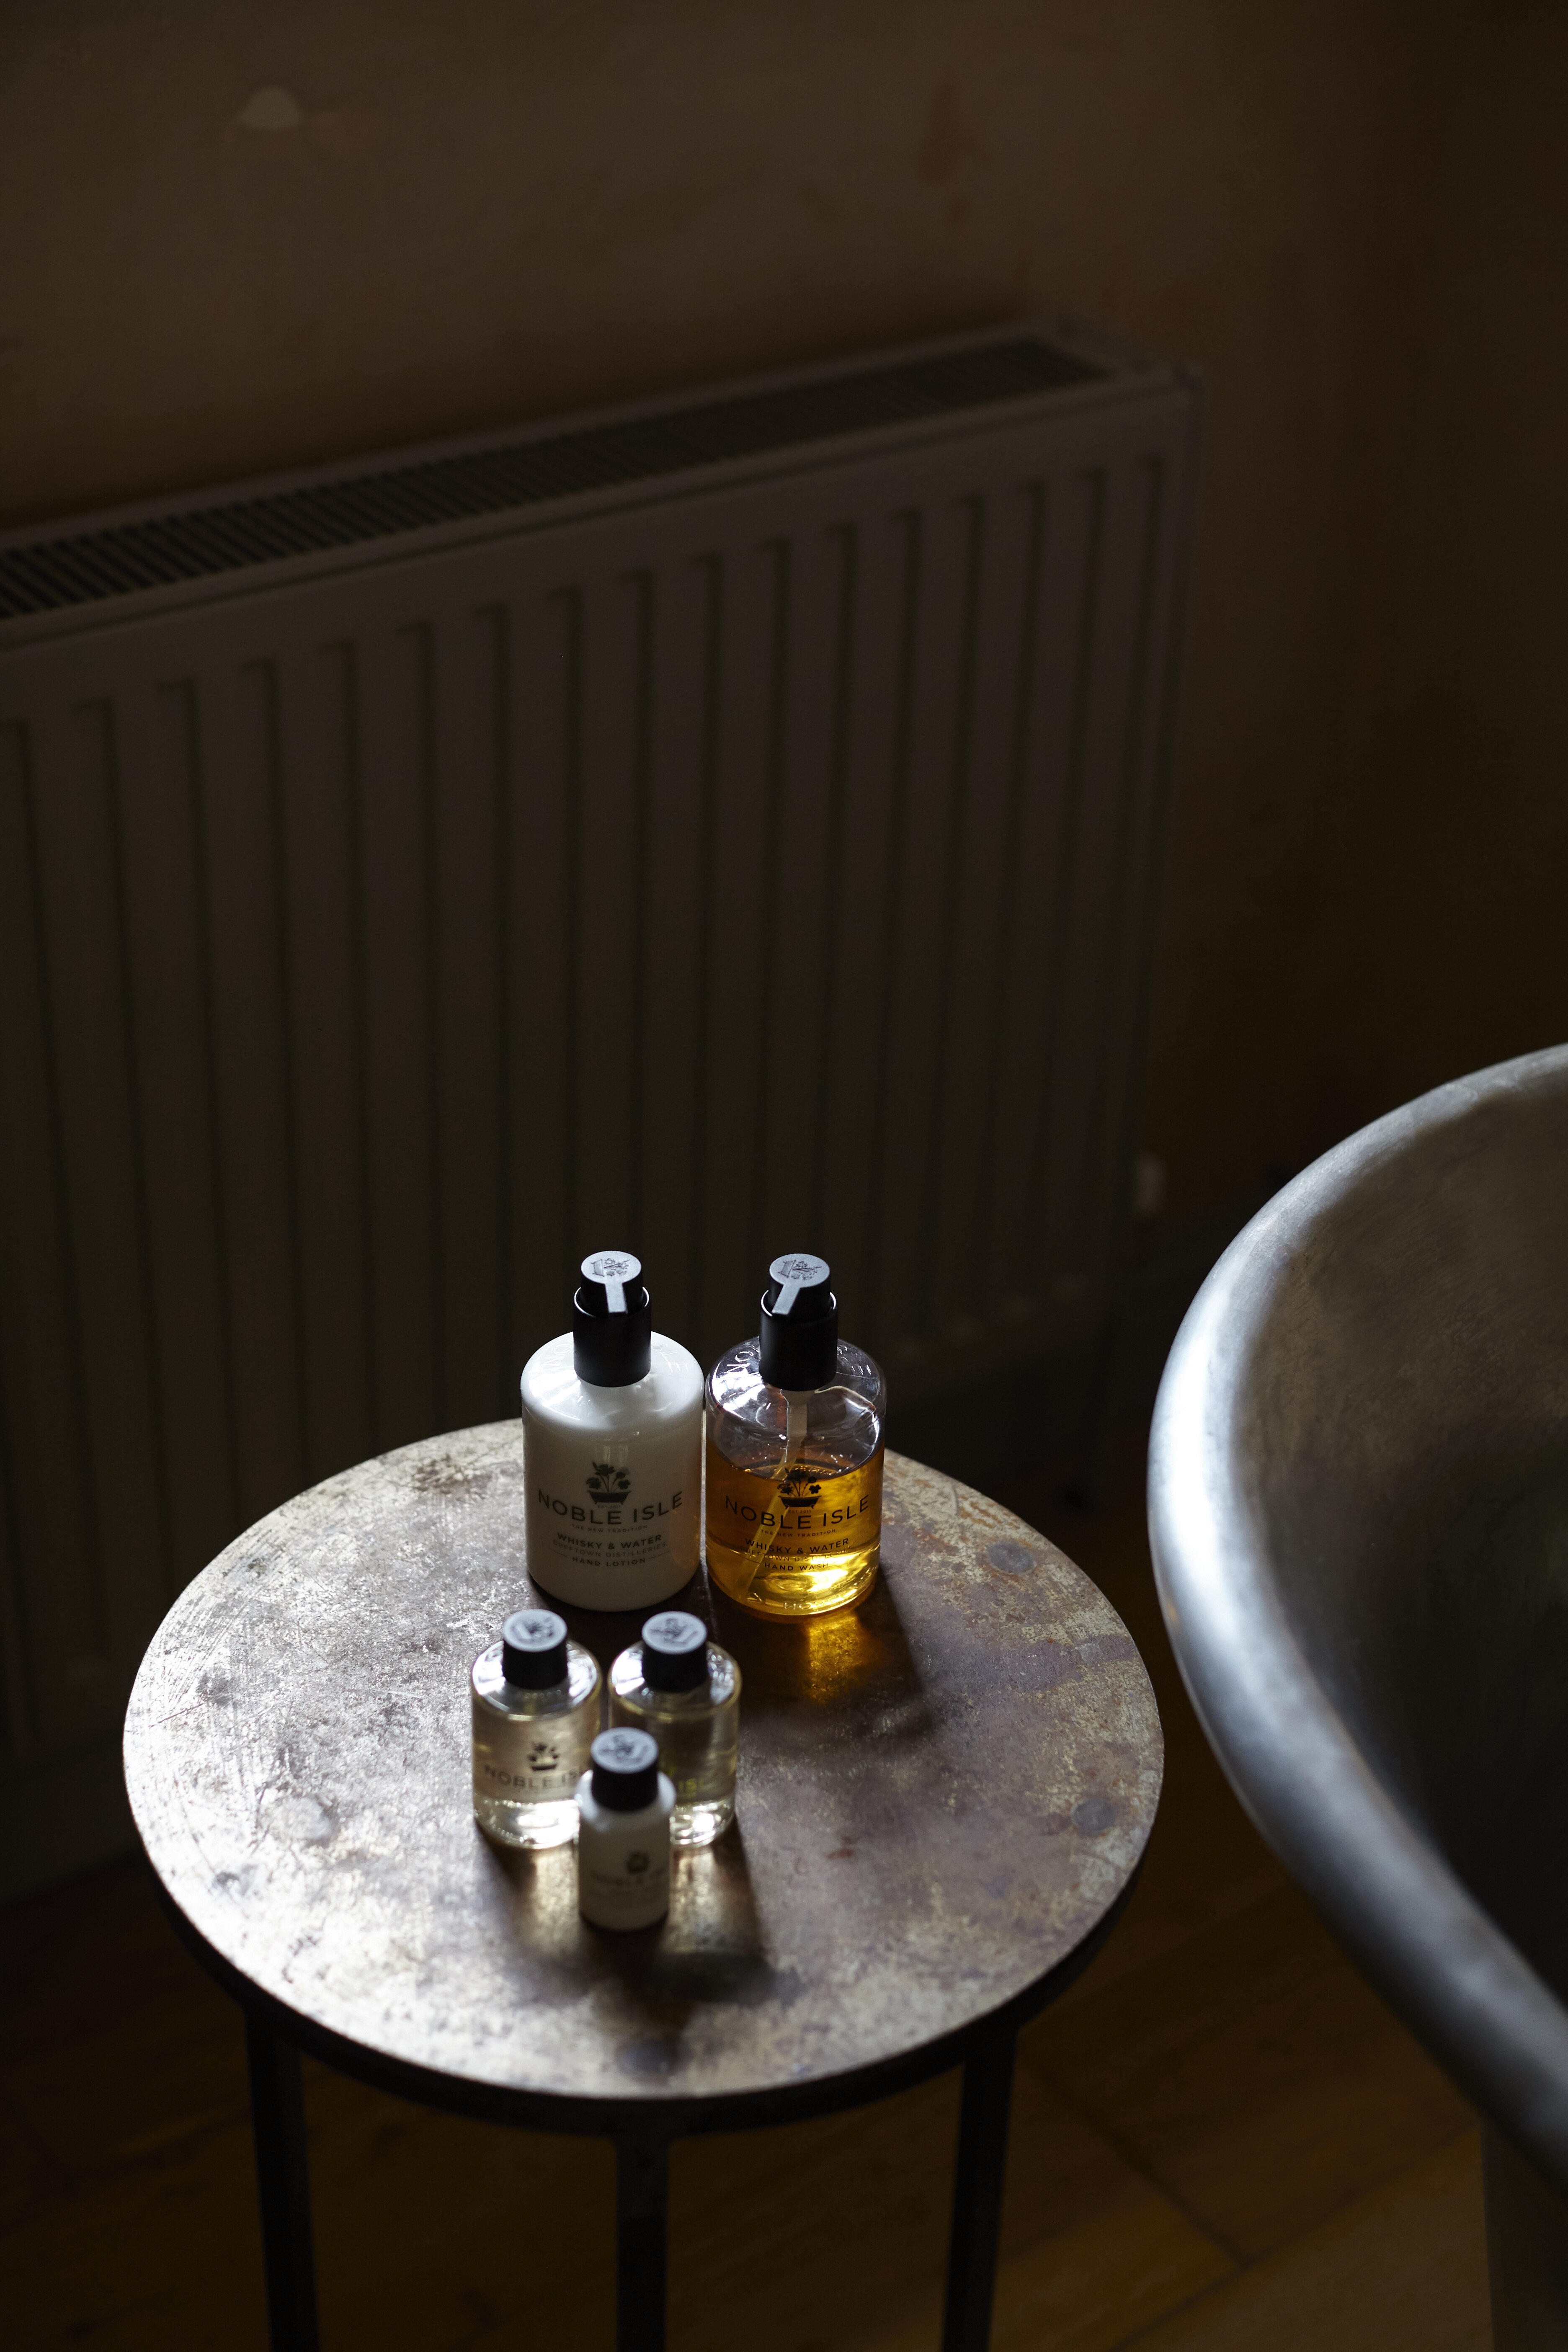 noble isle bath products at The Archangel, pub and cocktail bar with bedrooms in Frome, Somerset